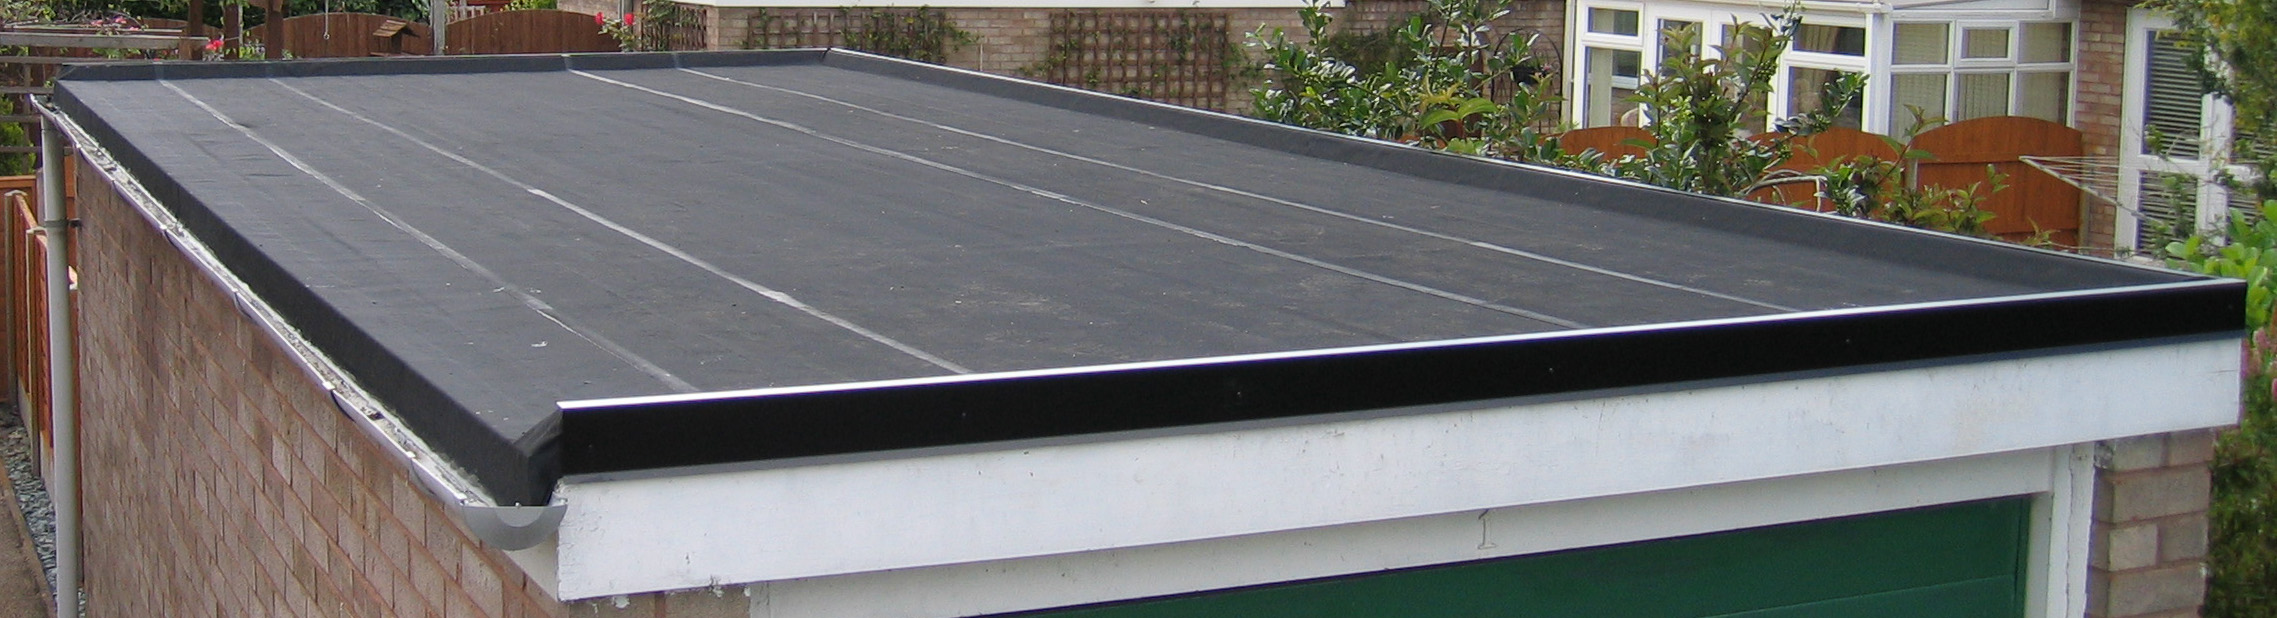 A R Sneddon Amp Sons Rubber Roofing Solutions